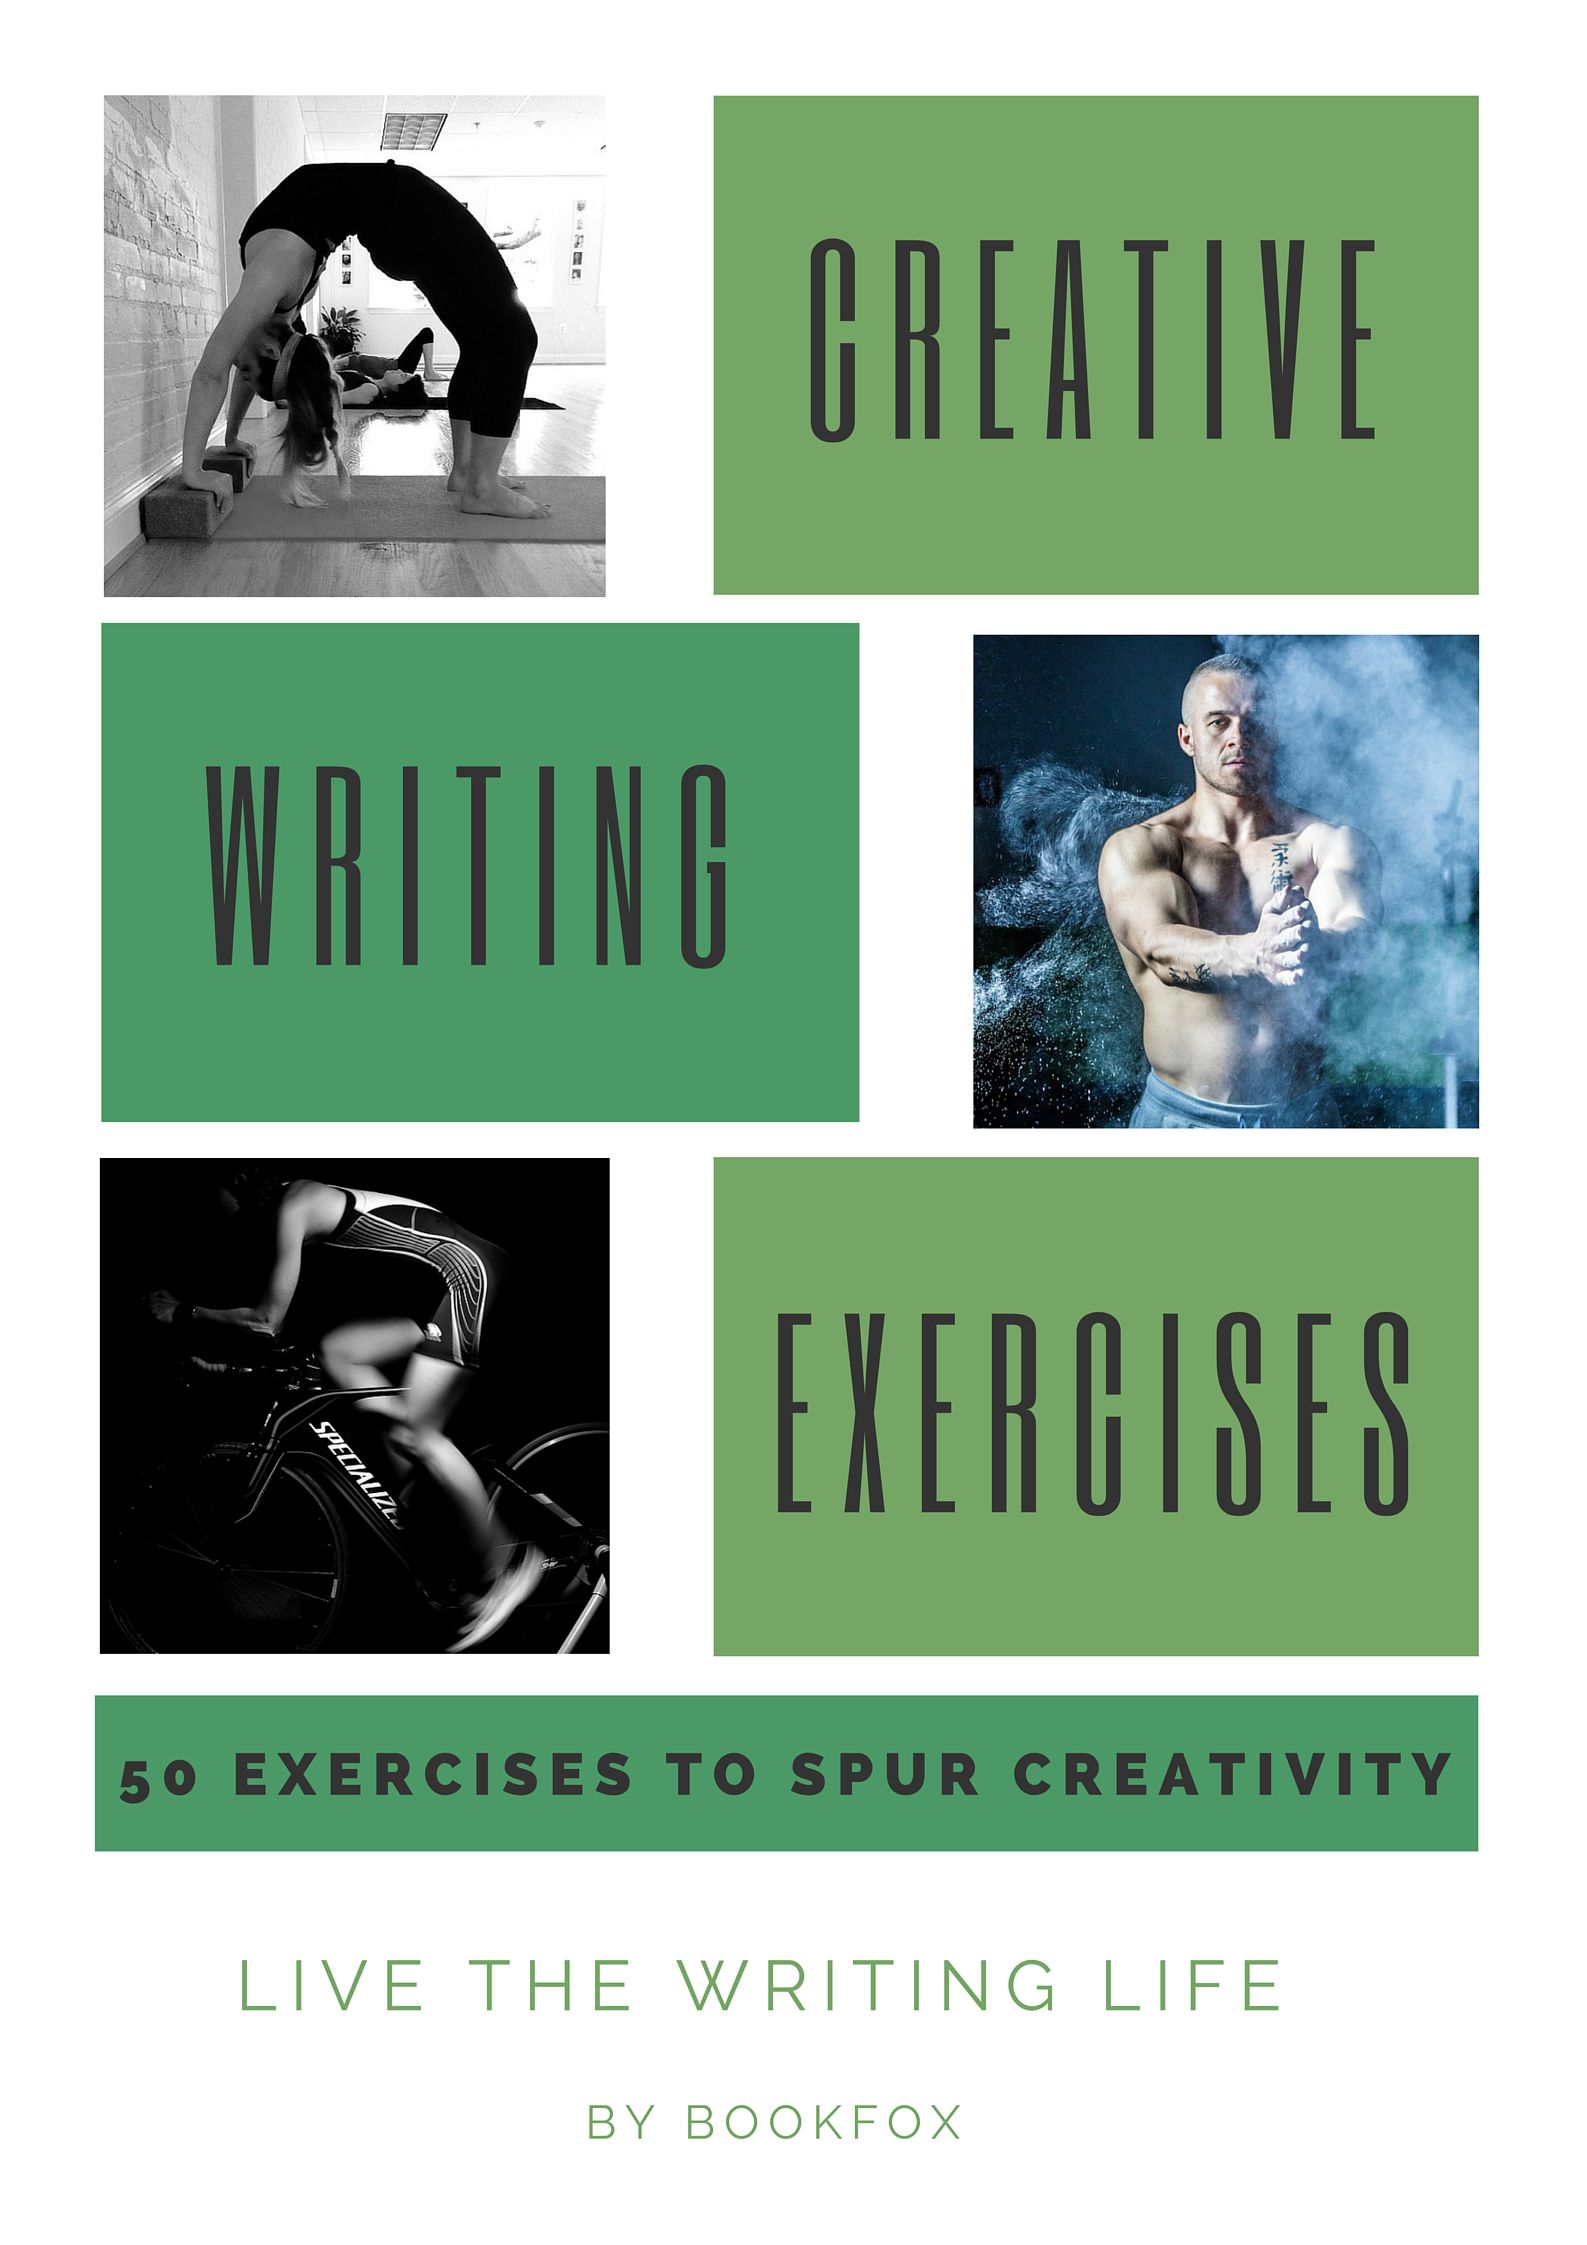 Free online creative writing exercises paper that you can write on